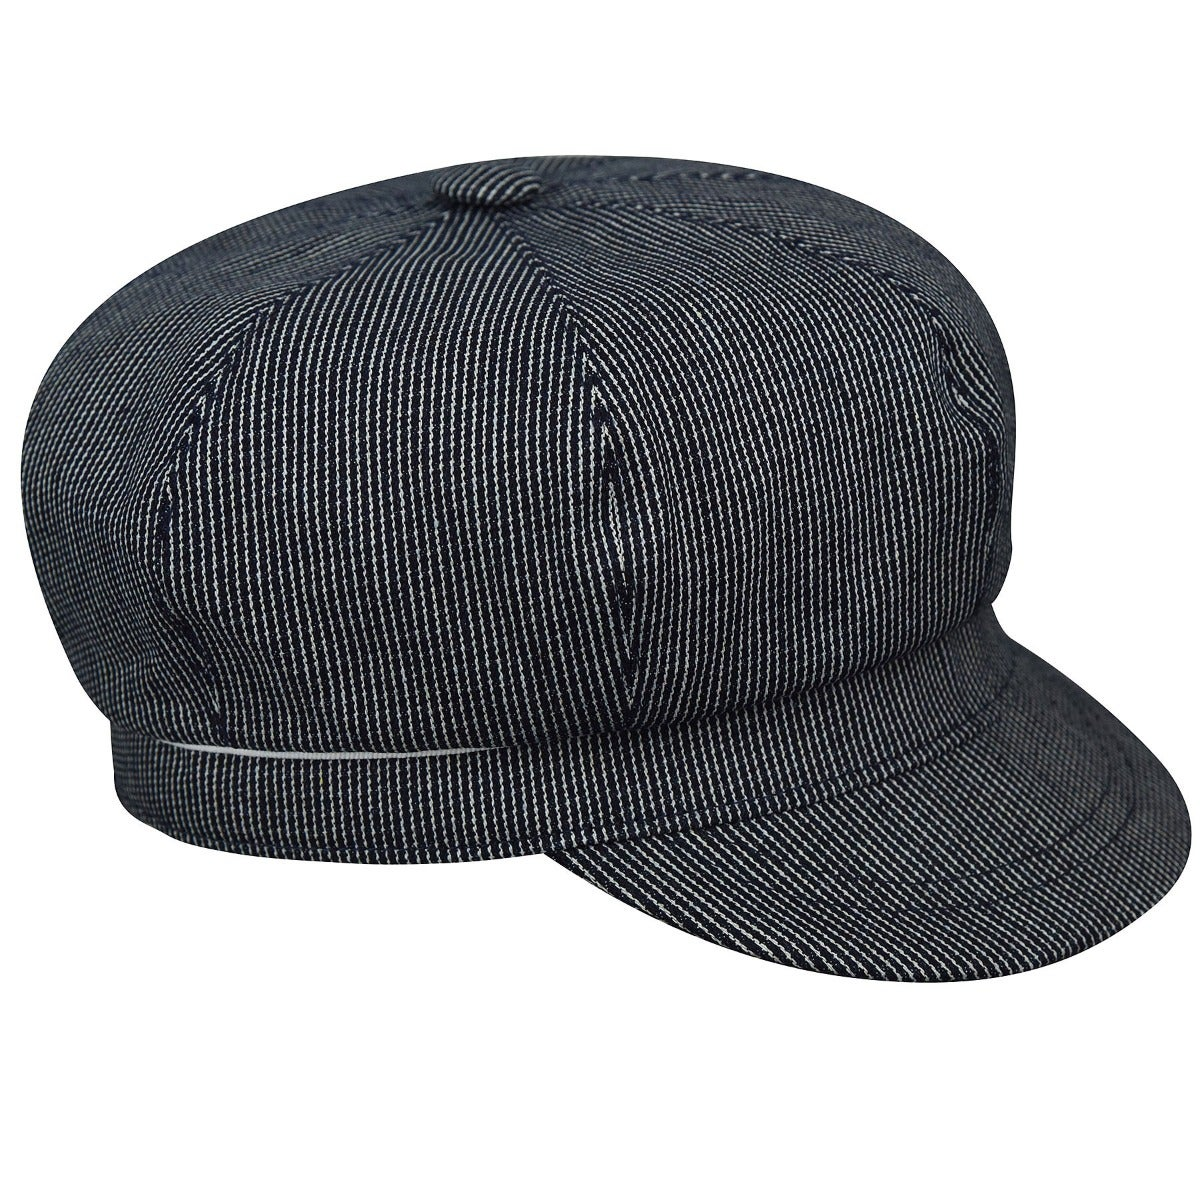 Men's Vintage Workwear – 1920s, 1930s, 1940s, 1950s Sailor Cap $30.00 AT vintagedancer.com